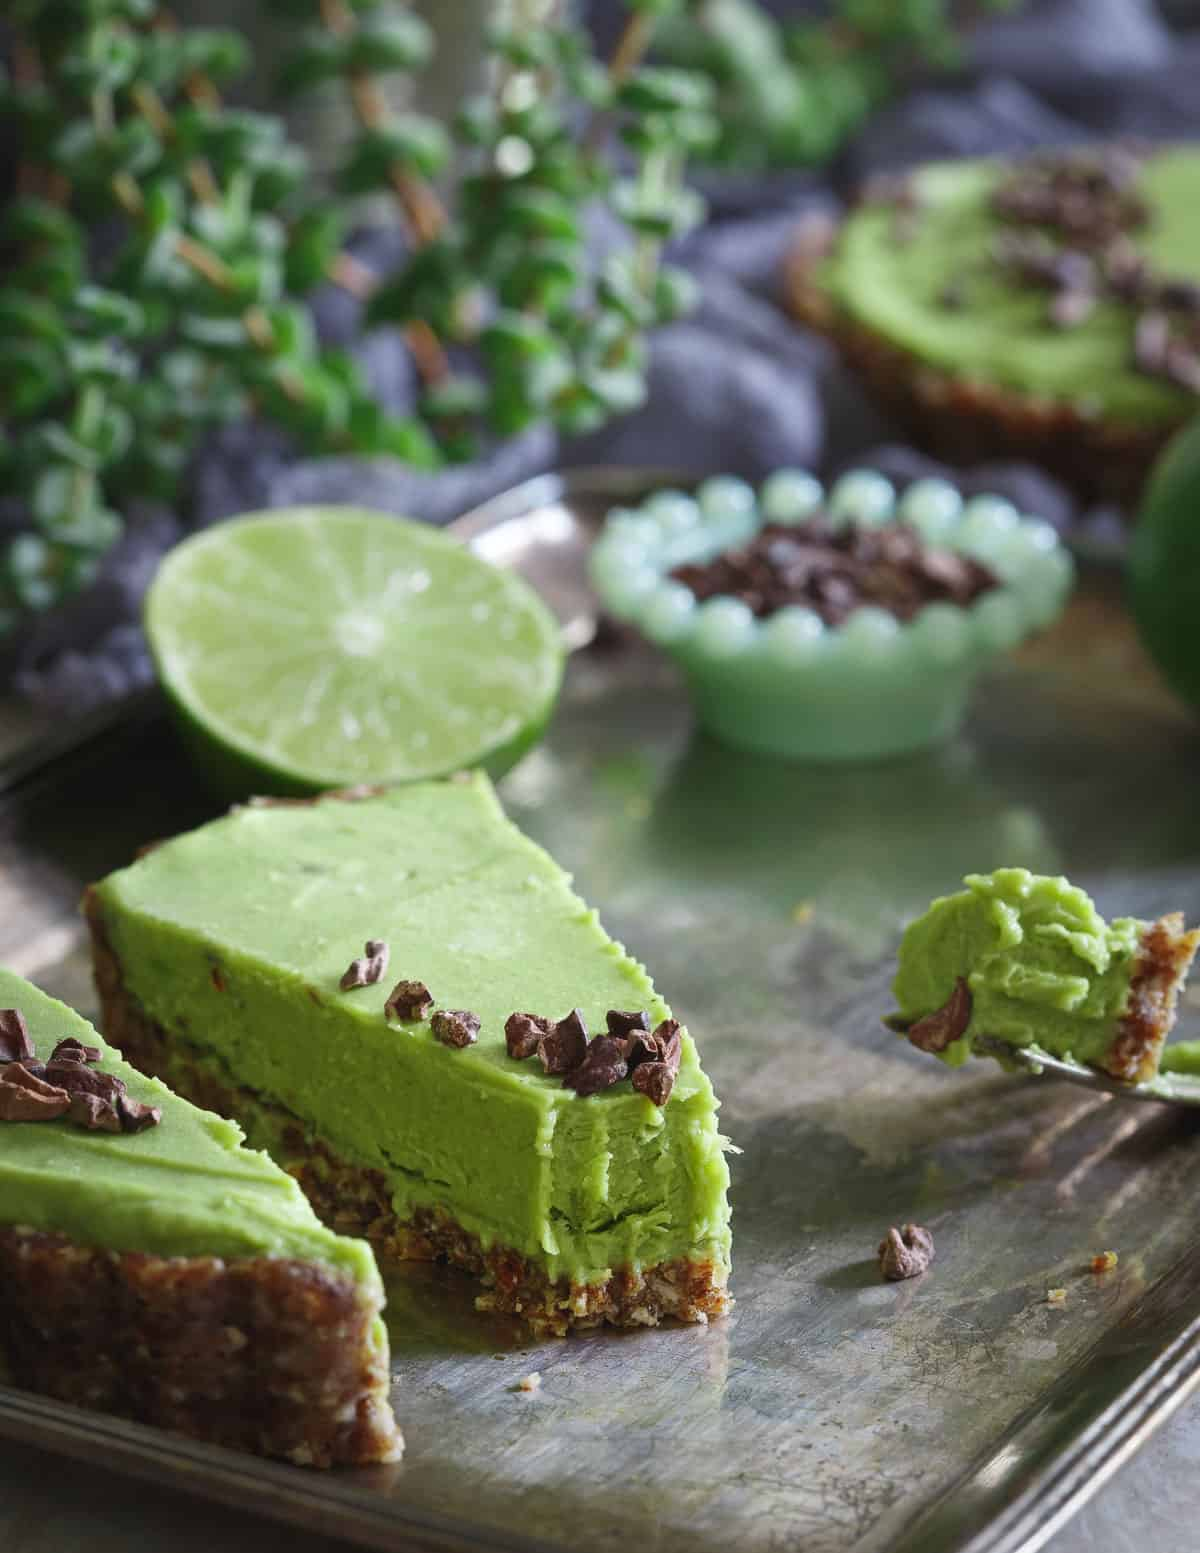 This Lime Avocado Tart is a simple and healthy no bake summer dessert